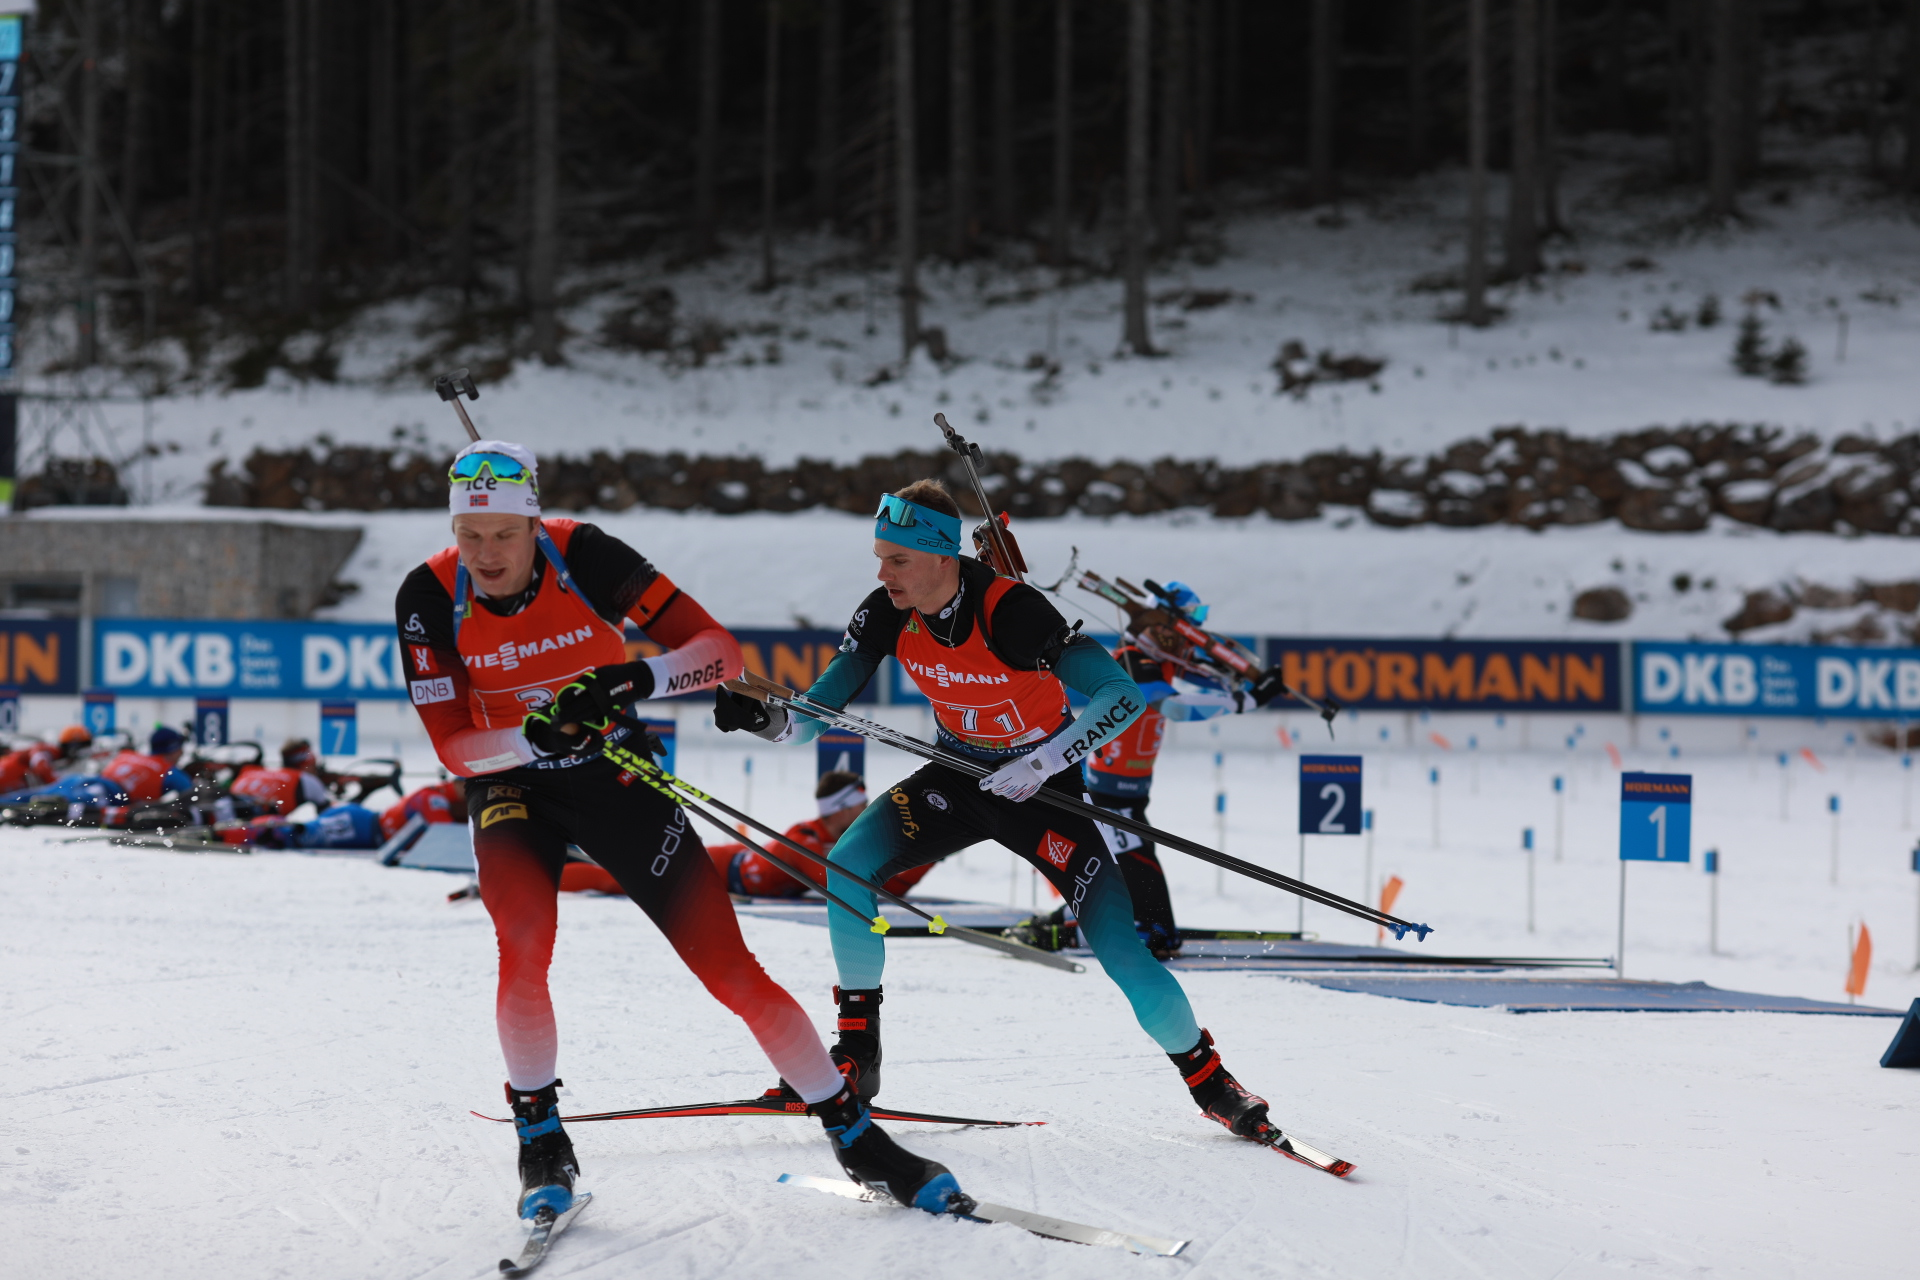 une, biathlon, coupe du monde, Pokljuka, relais mixte simple